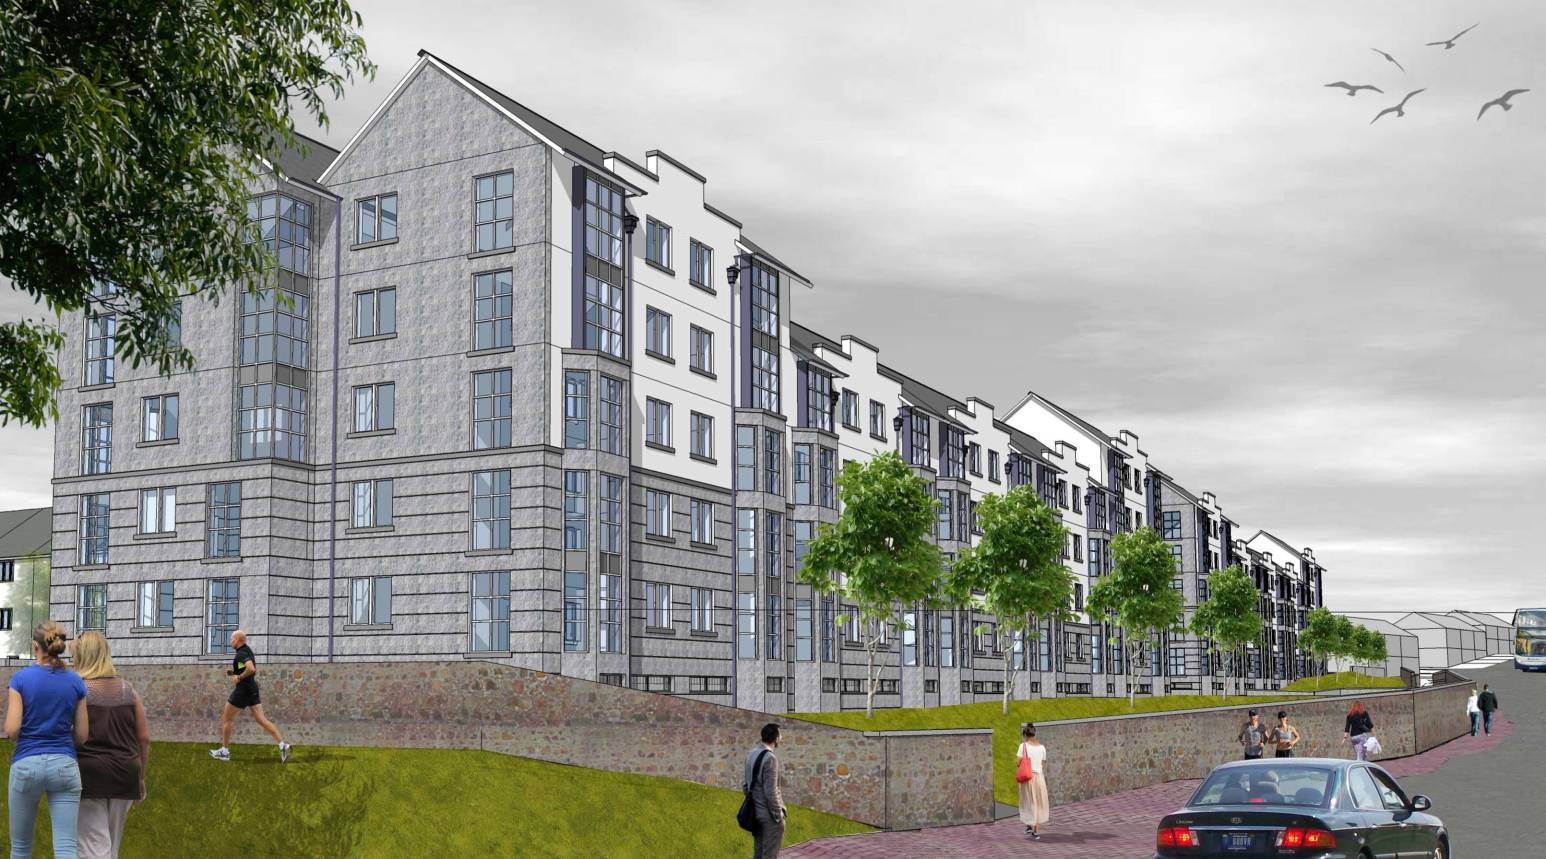 An artist impression of the planned flats at the Cornhill site.